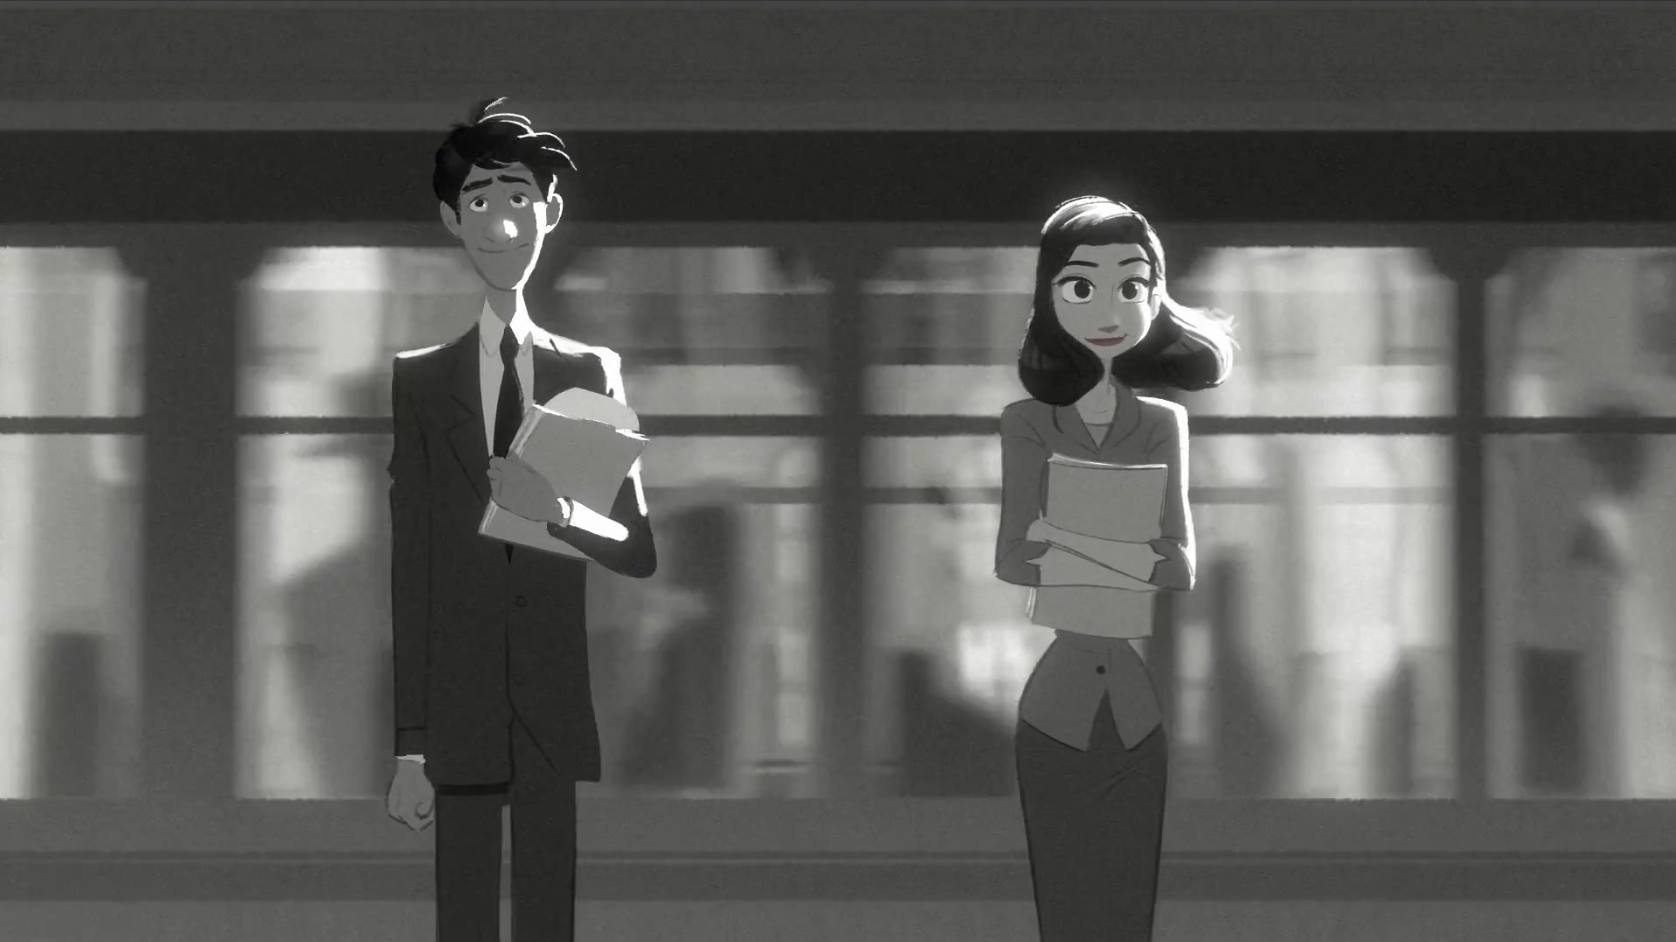 Paperman Background Wallpaper ...